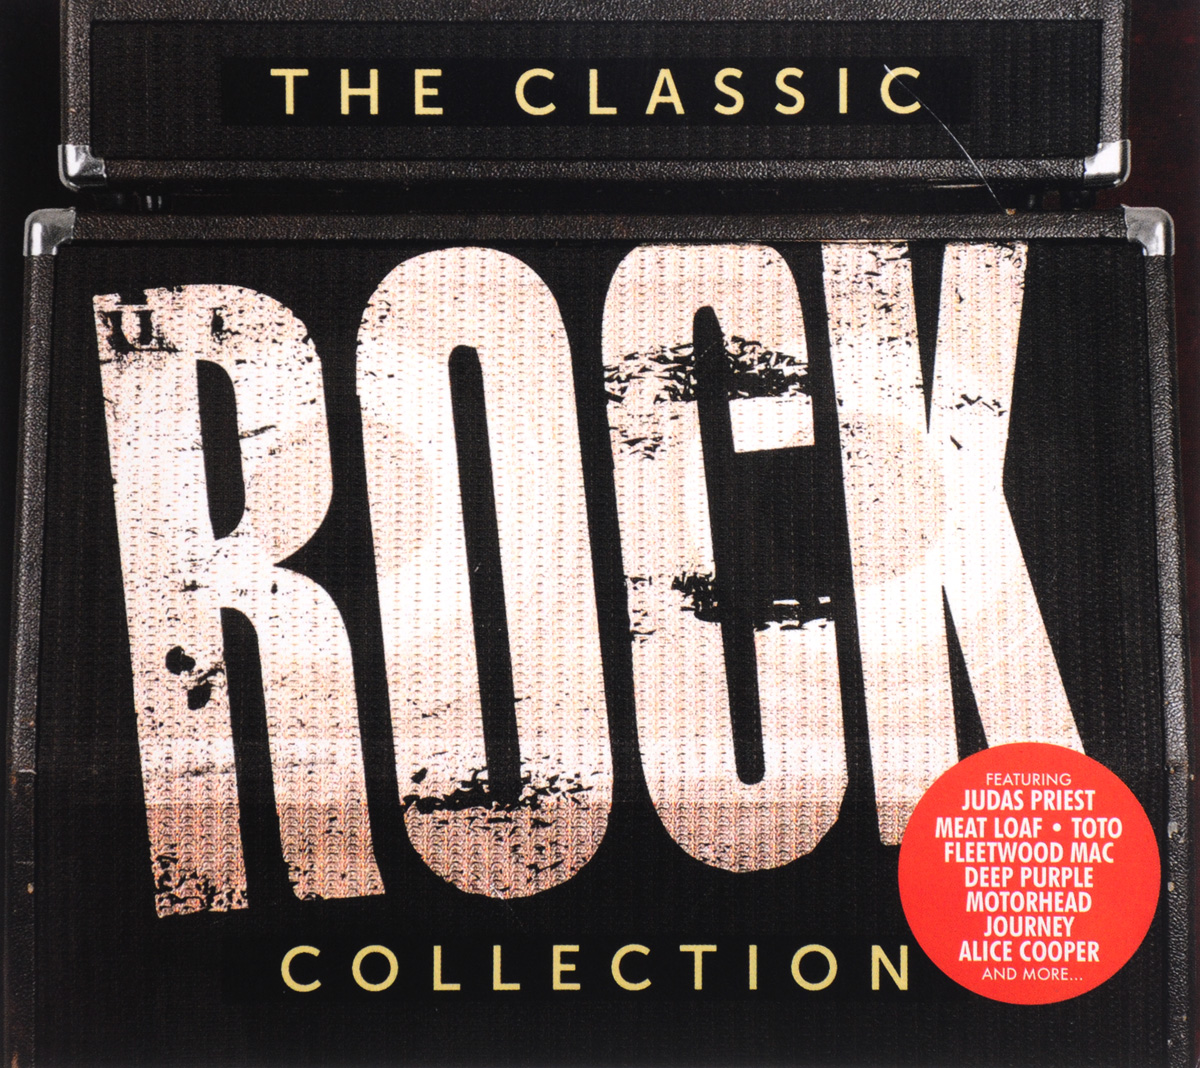 Boston,Blue Oyster Cult,The Outfield,Primal Scream,Fleetwood Mac,Big Brother & The Holding Company,Джеф Бакли,The Fray,Стив Вай,Bad English The Classic Rock Collection (3 CD) fleetwood mac fleetwood mac mirage 5 lp